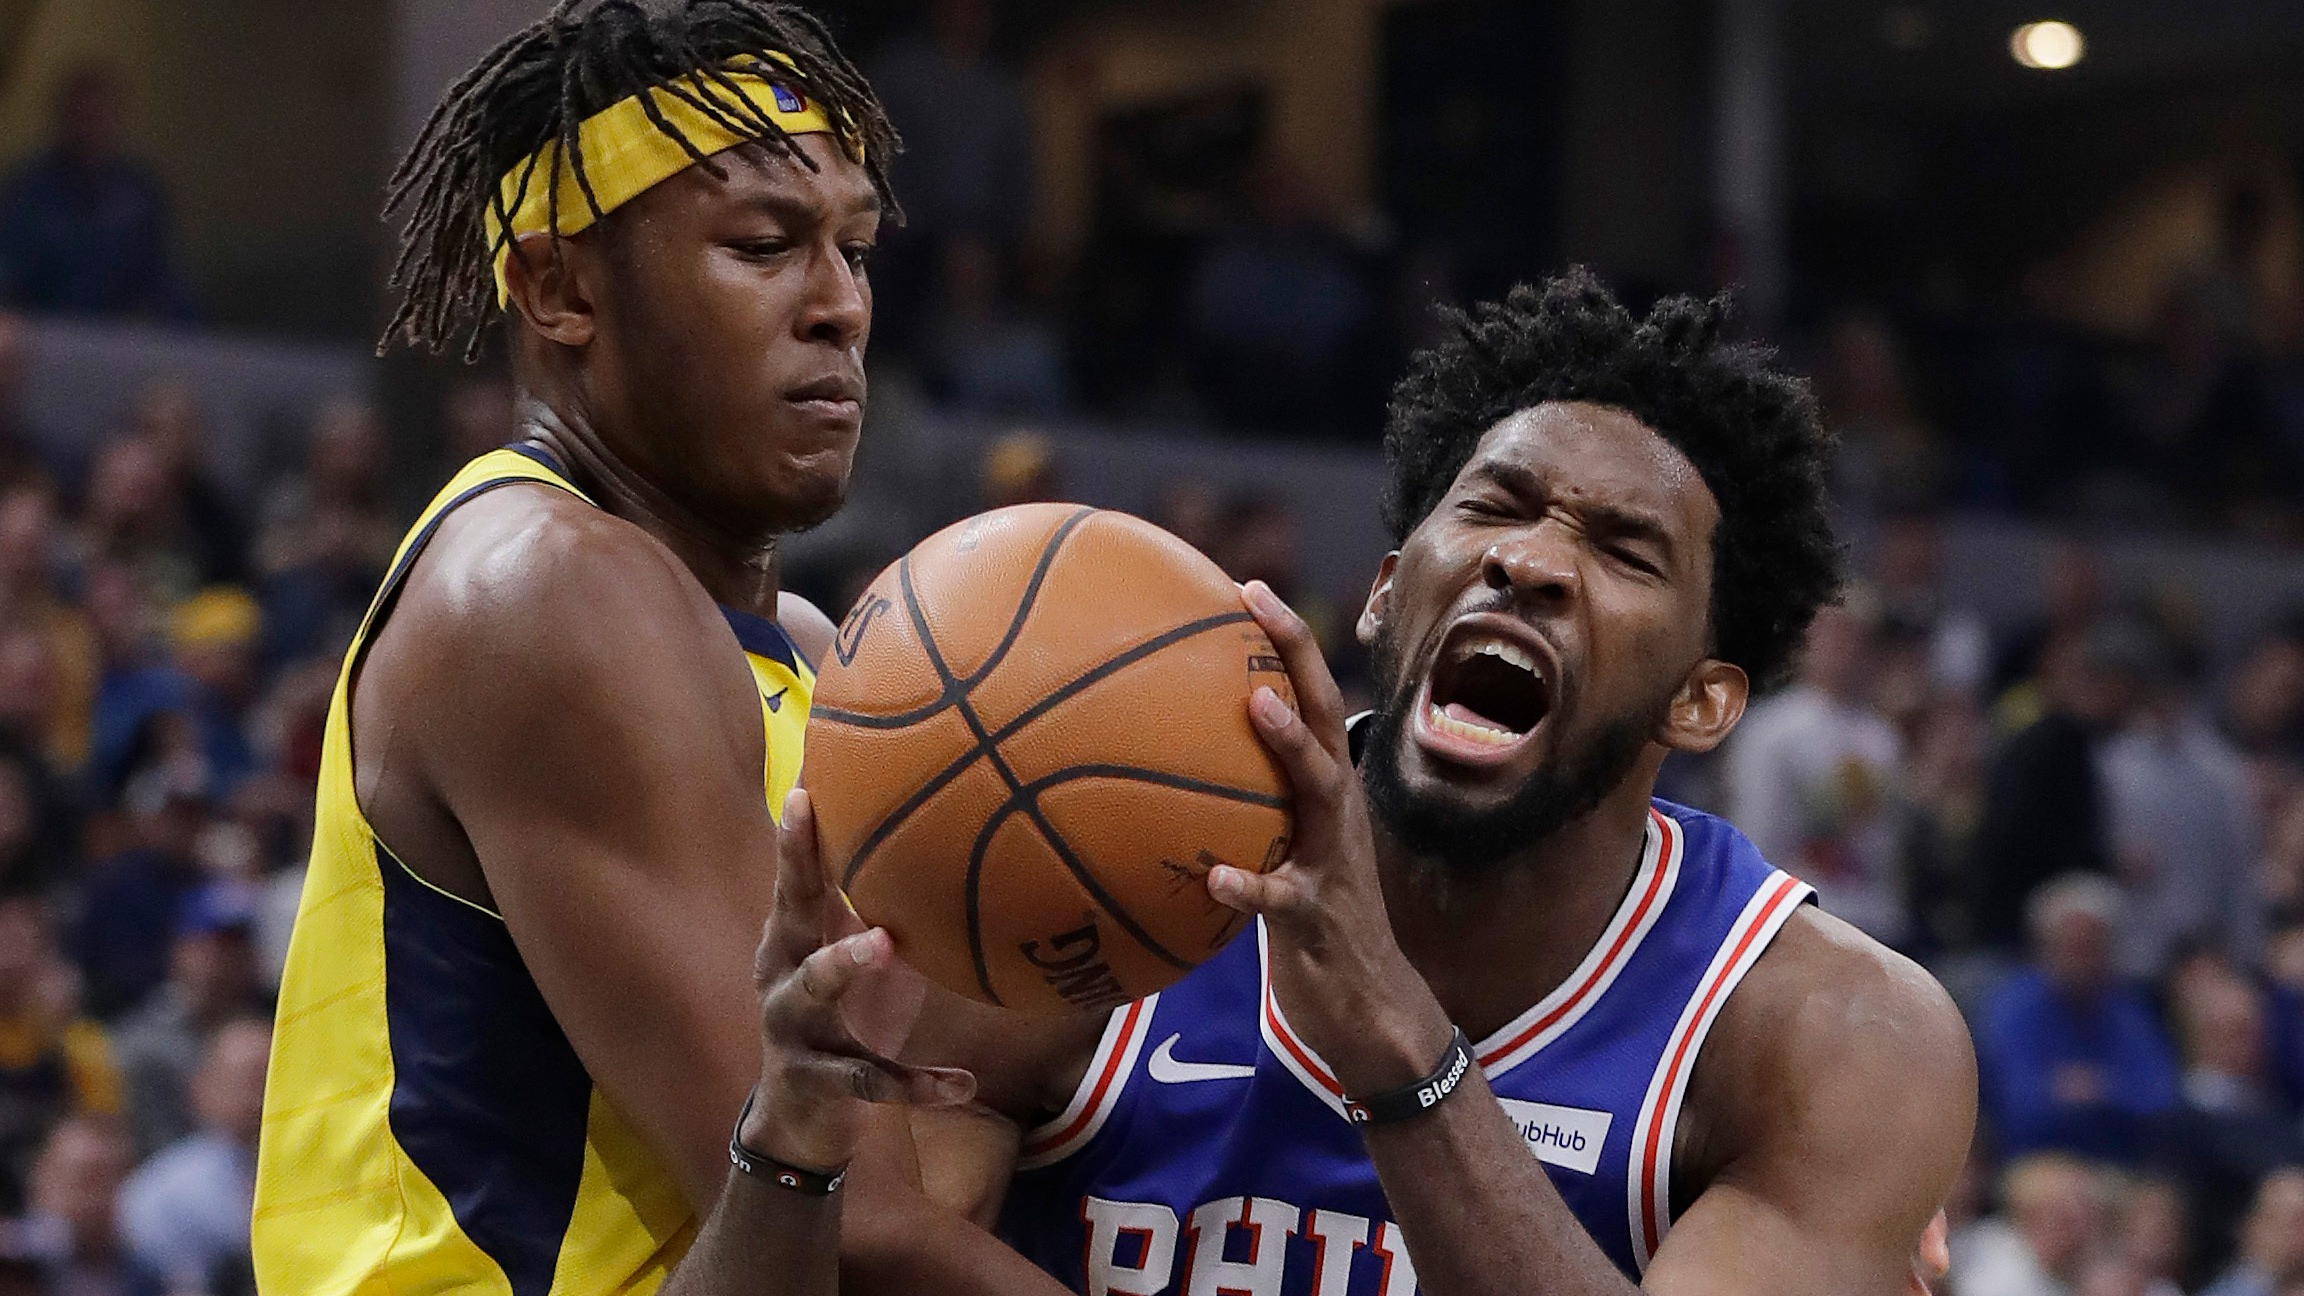 853d5b1bbec Pacers at 76ers betting lines, odds, trends: Philly favored as Joel Embiid  expected back on Sunday